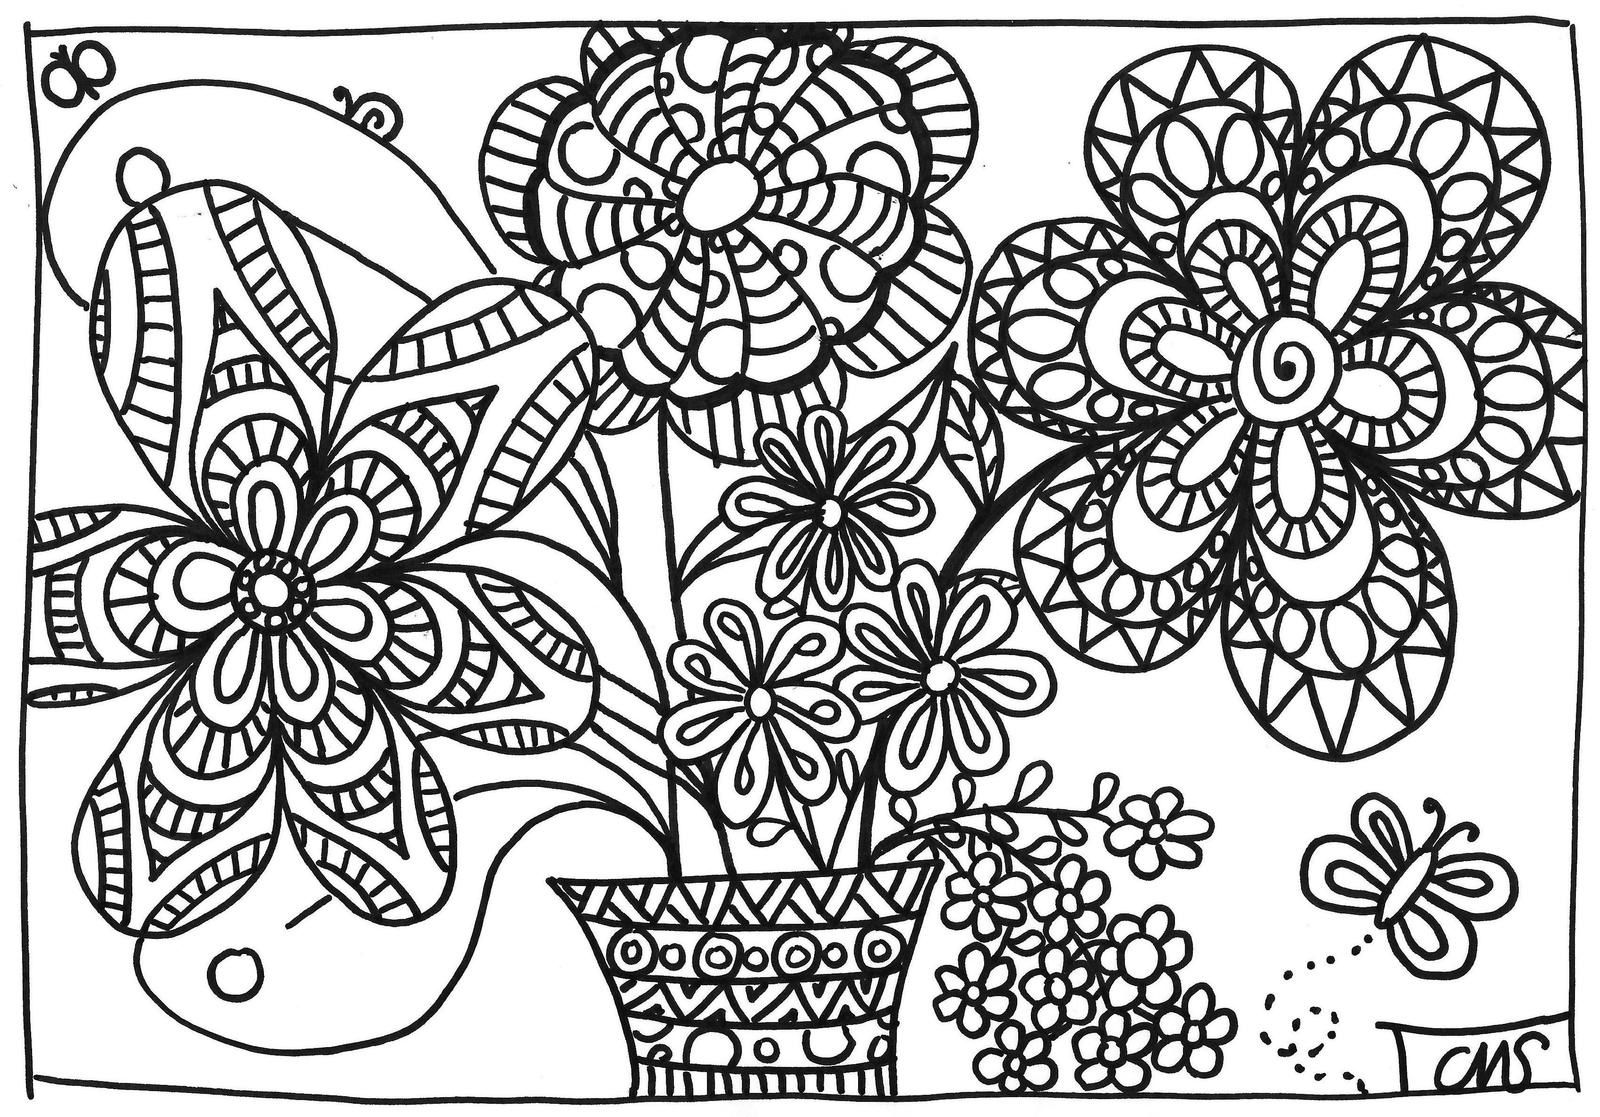 coloriage: bouquet de printemps